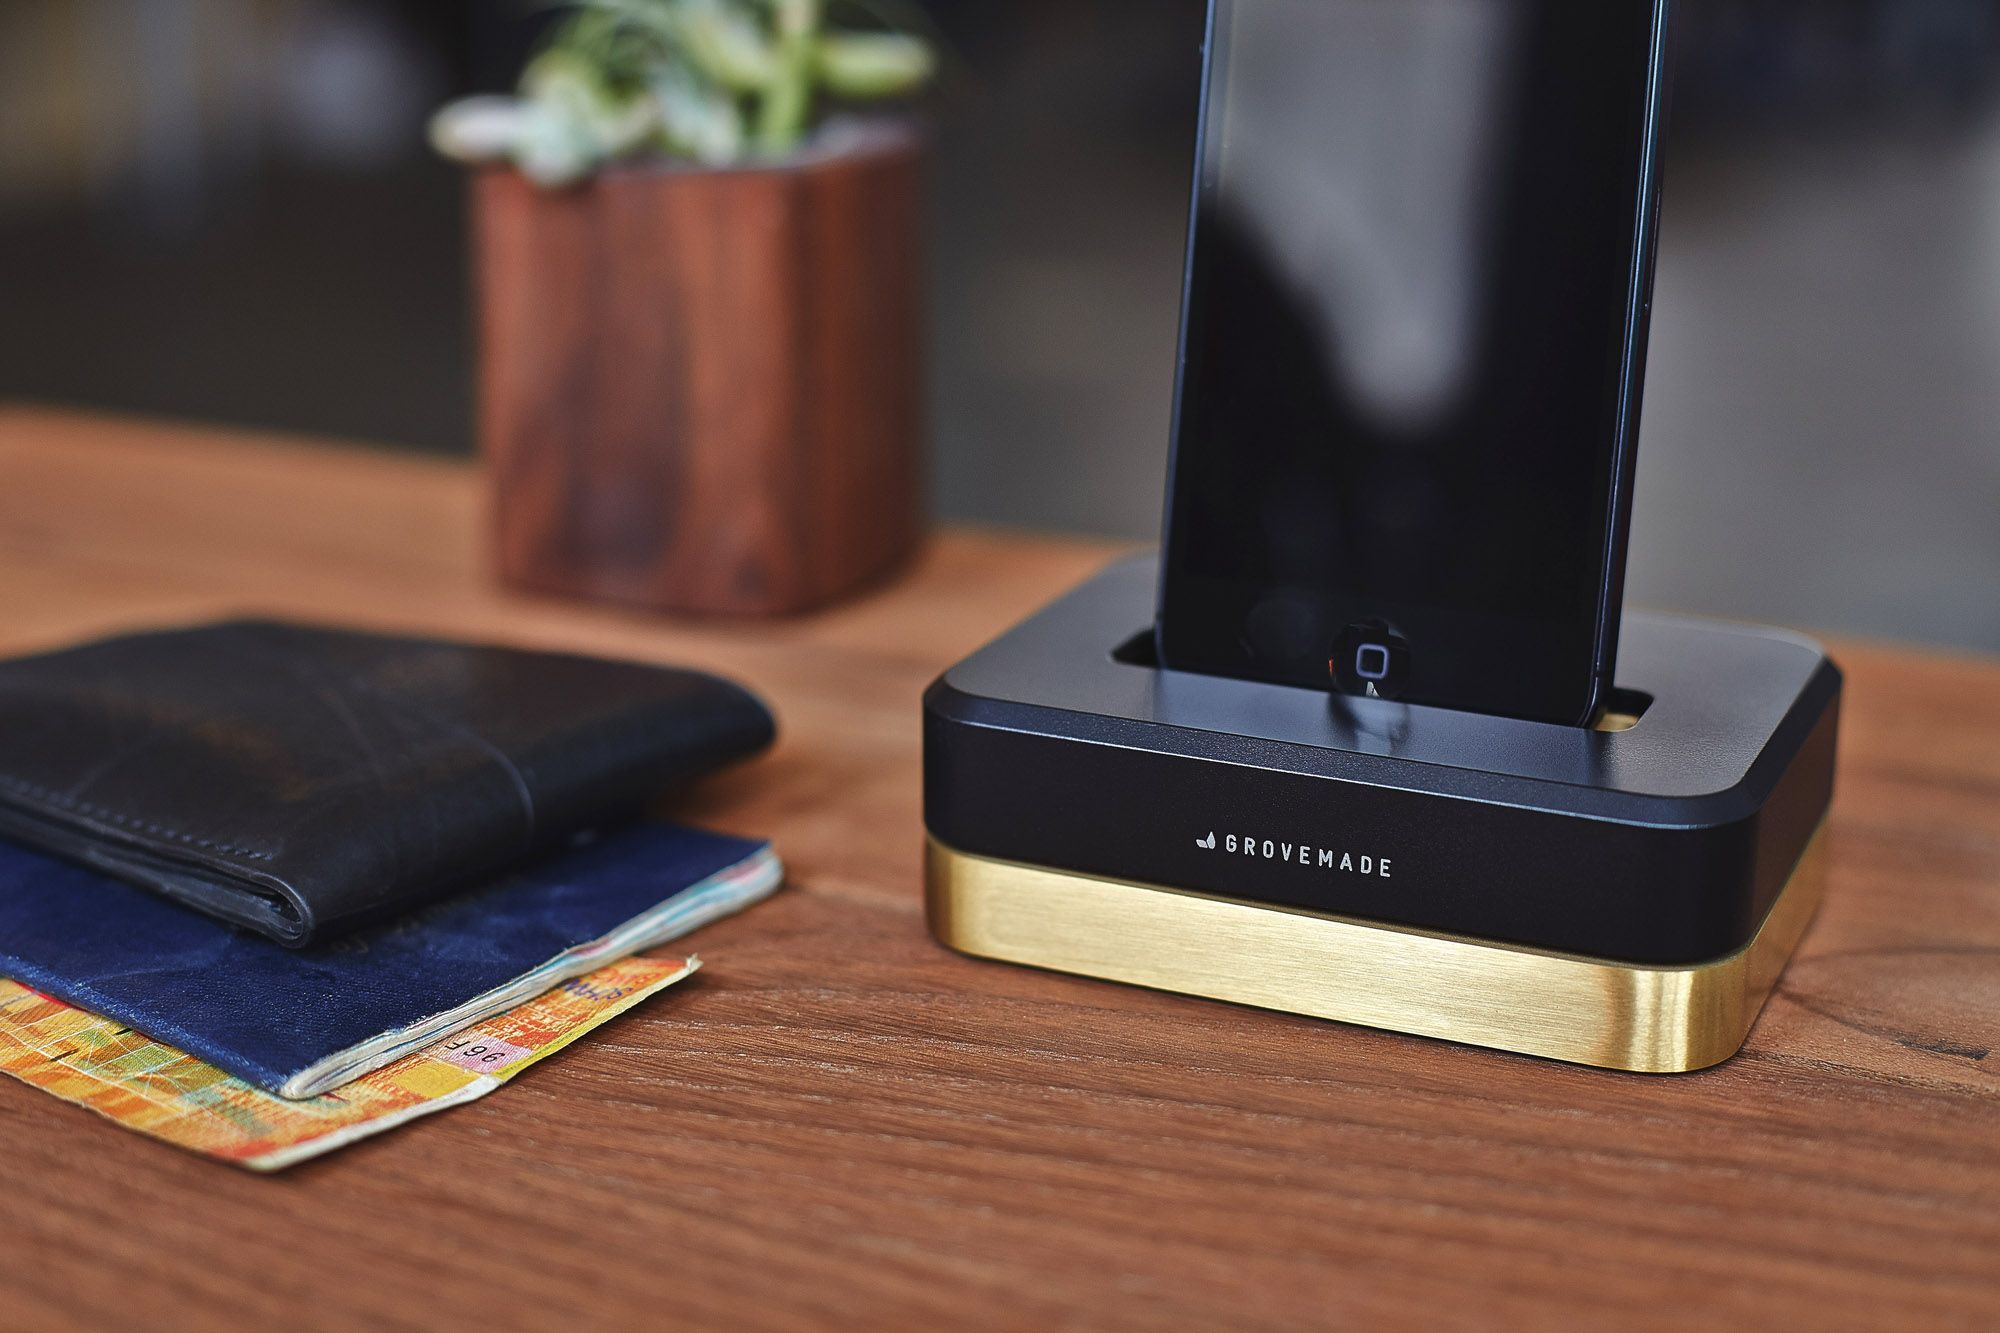 grovemade brass iphone dock